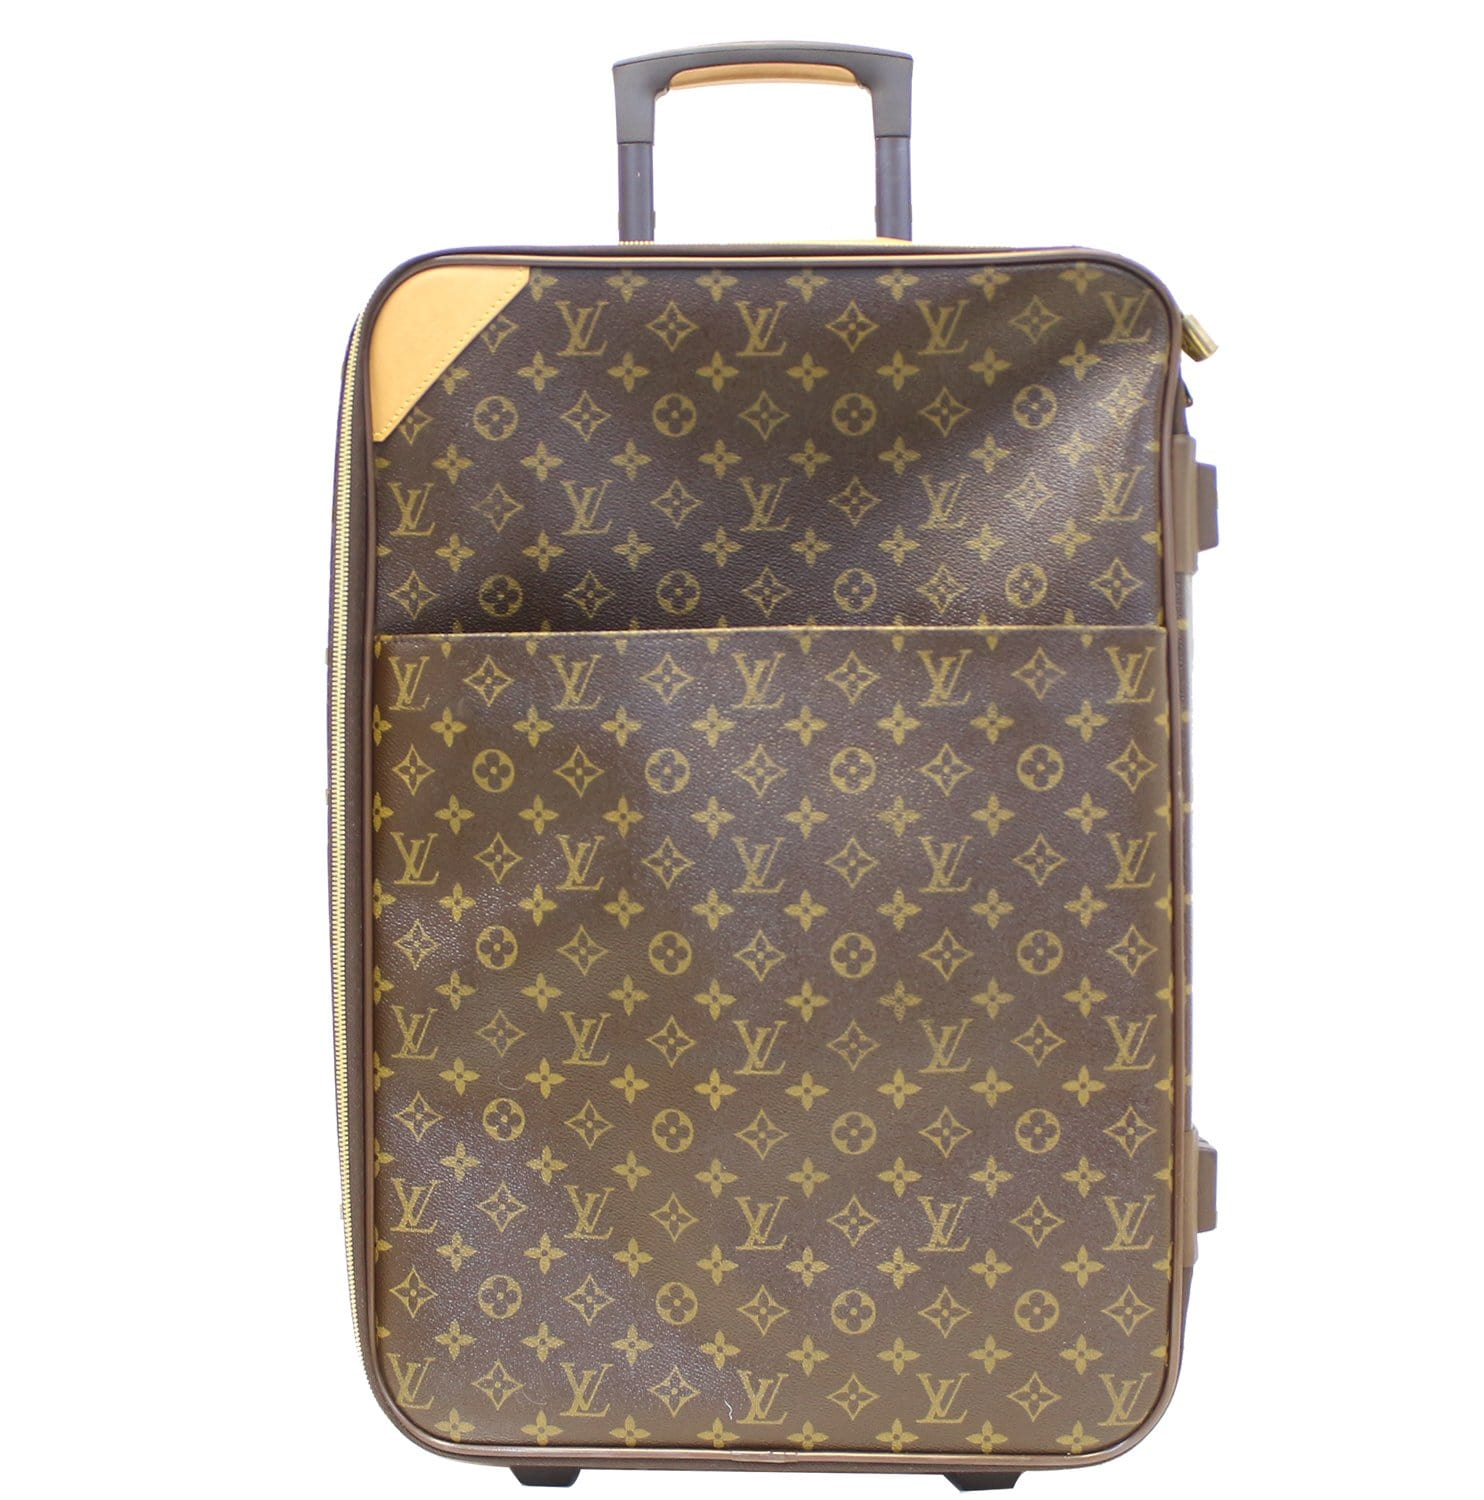 81fd0ecce9fe LOUIS VUITTON Monogram Canvas Pegase 55 Business Suitcase Travel Bag